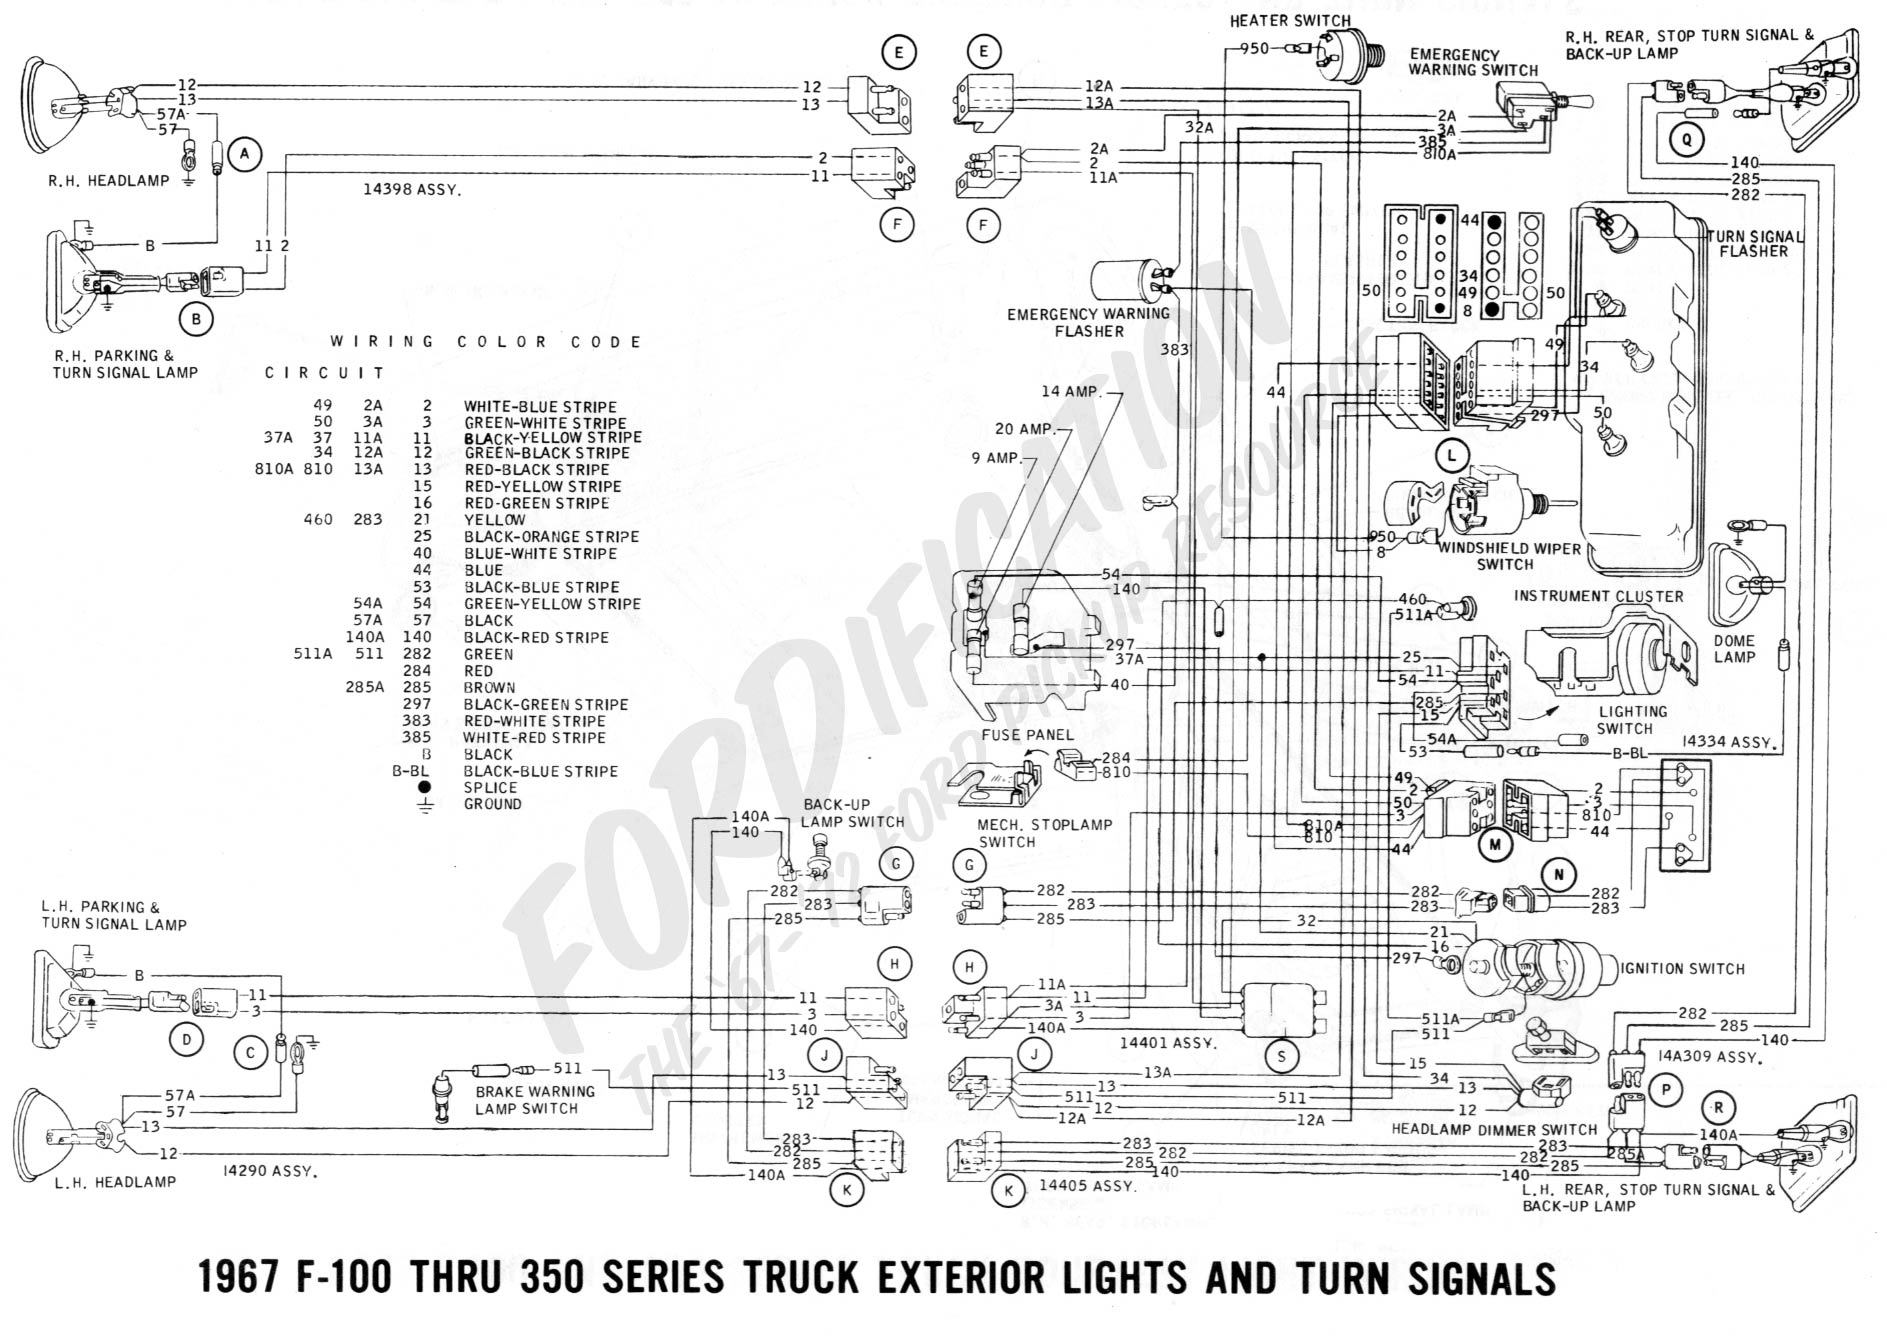 80 1967_exterior_lights_and_turn_signals_page_2_1db6c529c4c9567560e56d6320f993290ba5b803 66 mustang wiring diagram 1966 mustang dash wiring diagram 1966 ford truck wiring diagram at aneh.co